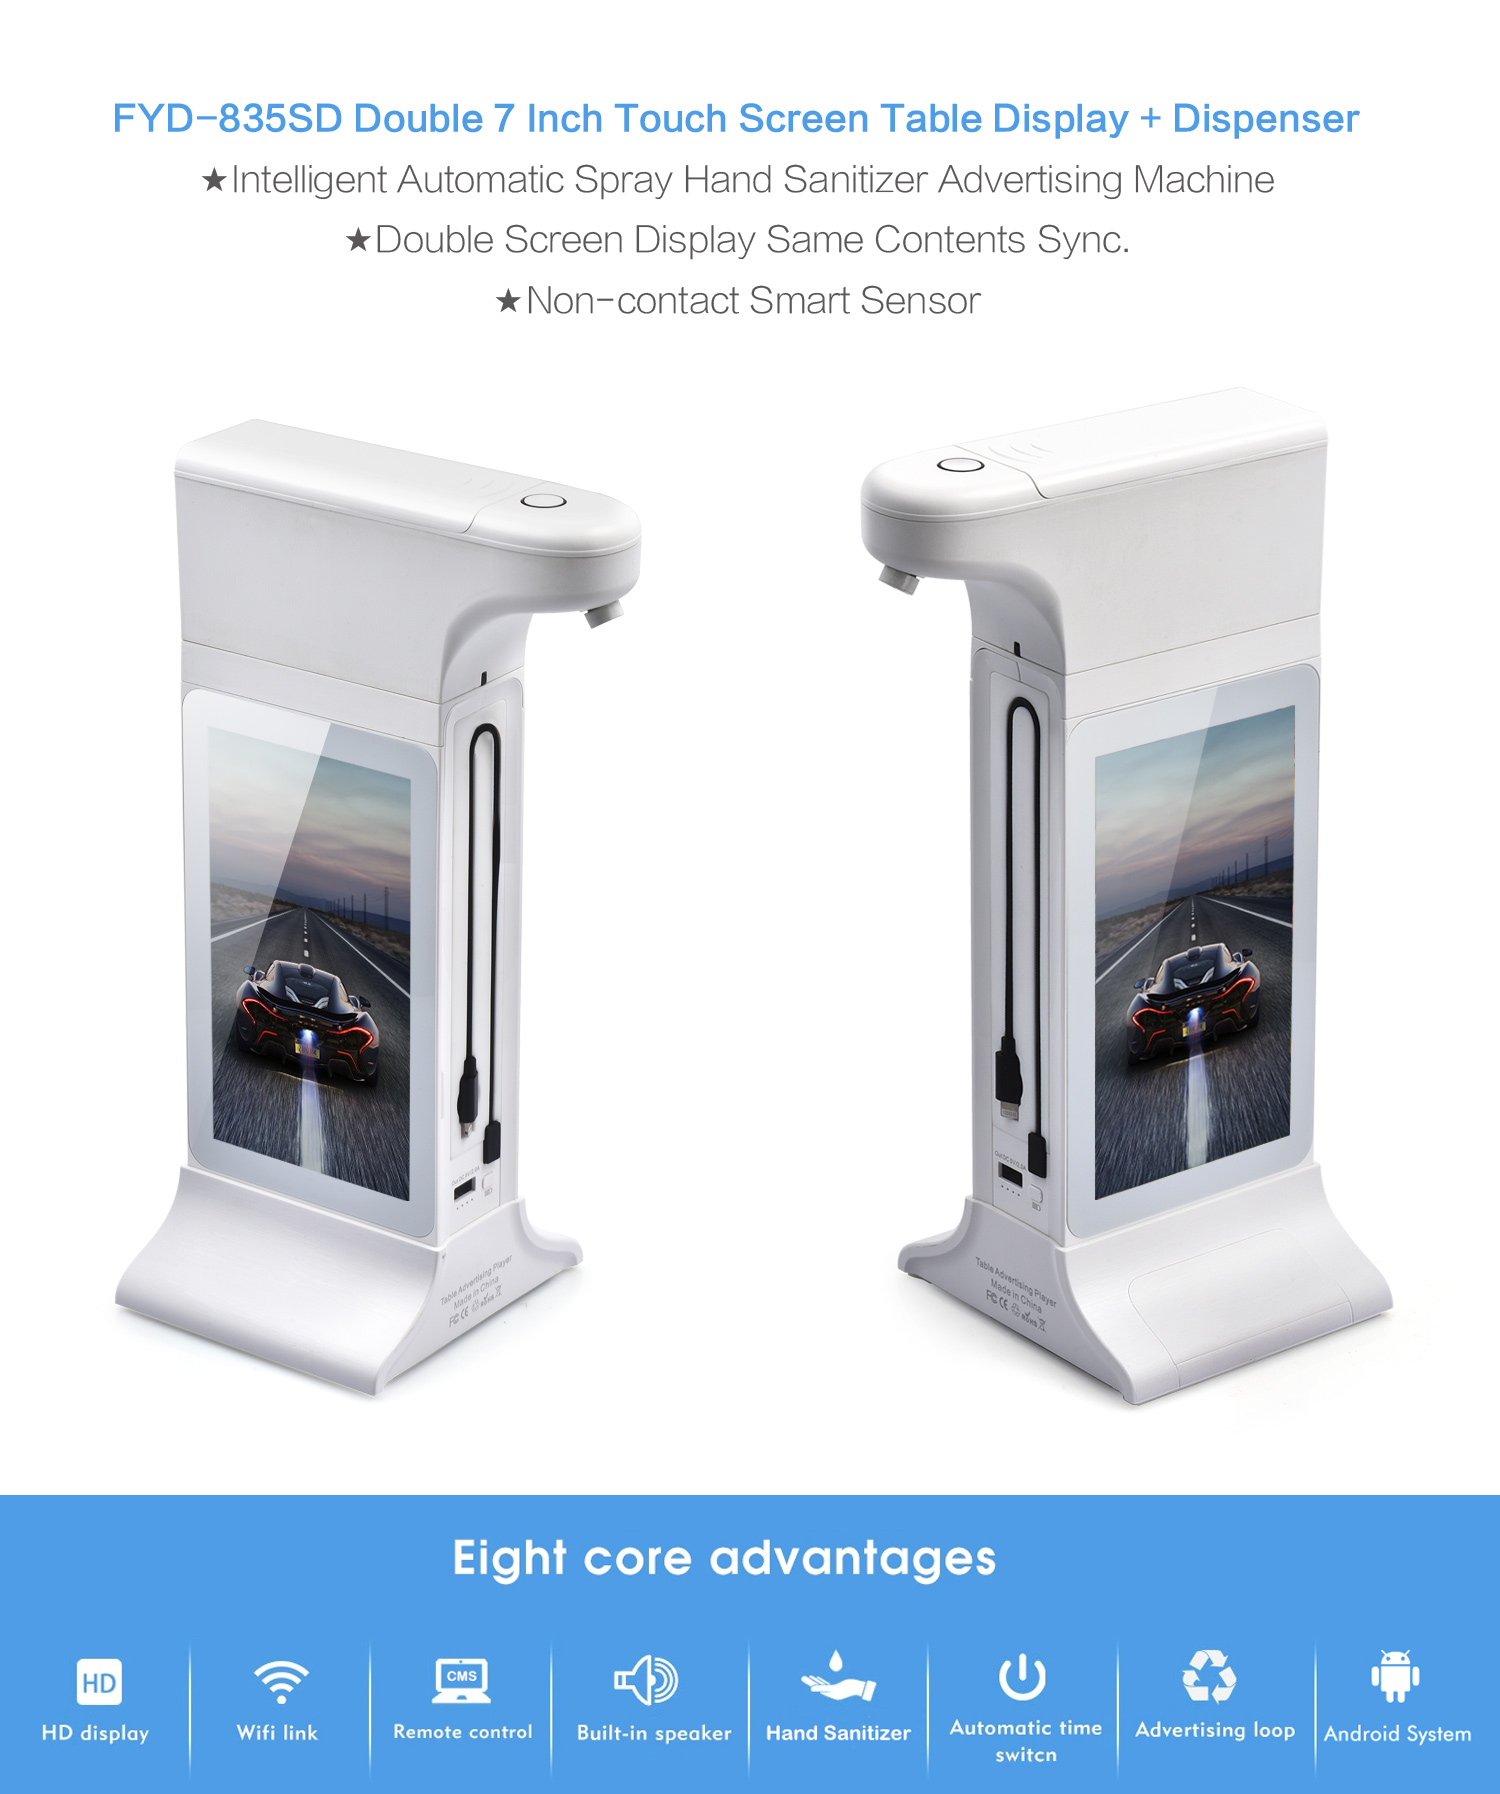 Double 7 inch touch screen table display and dispenser